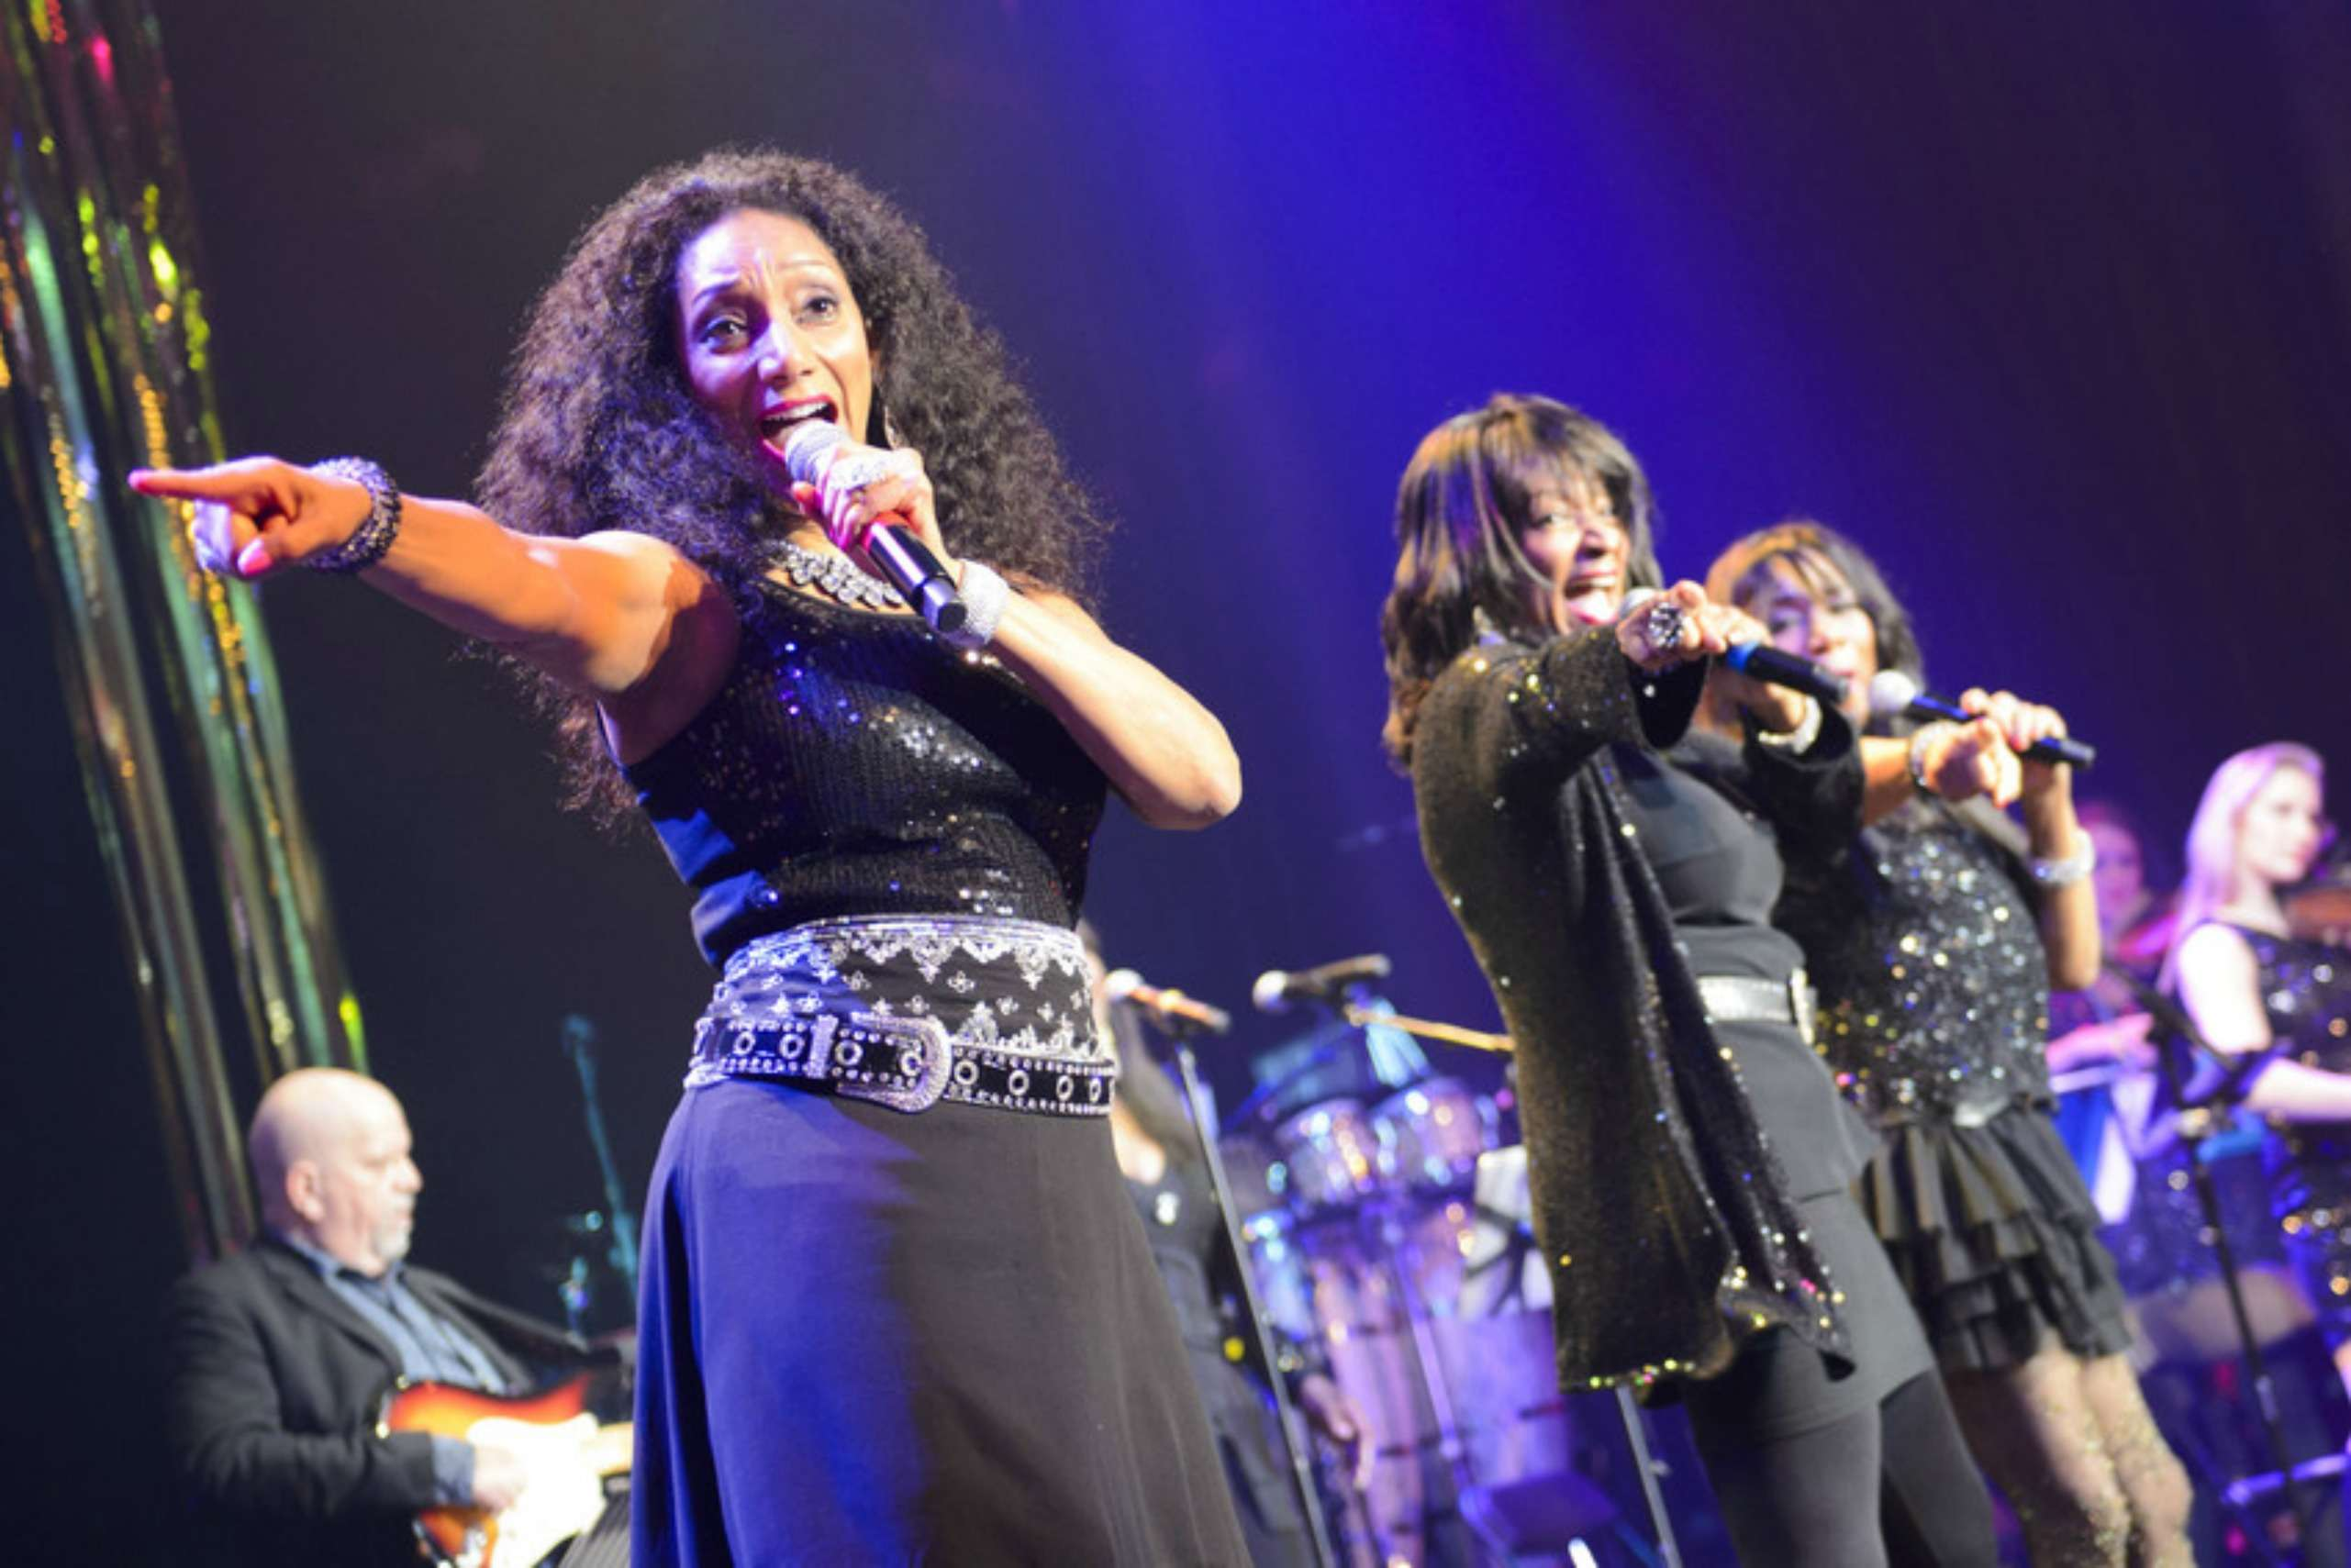 'A Night of Disco' for Save the Children UK, held at the Roundhouse in Camden, north London.